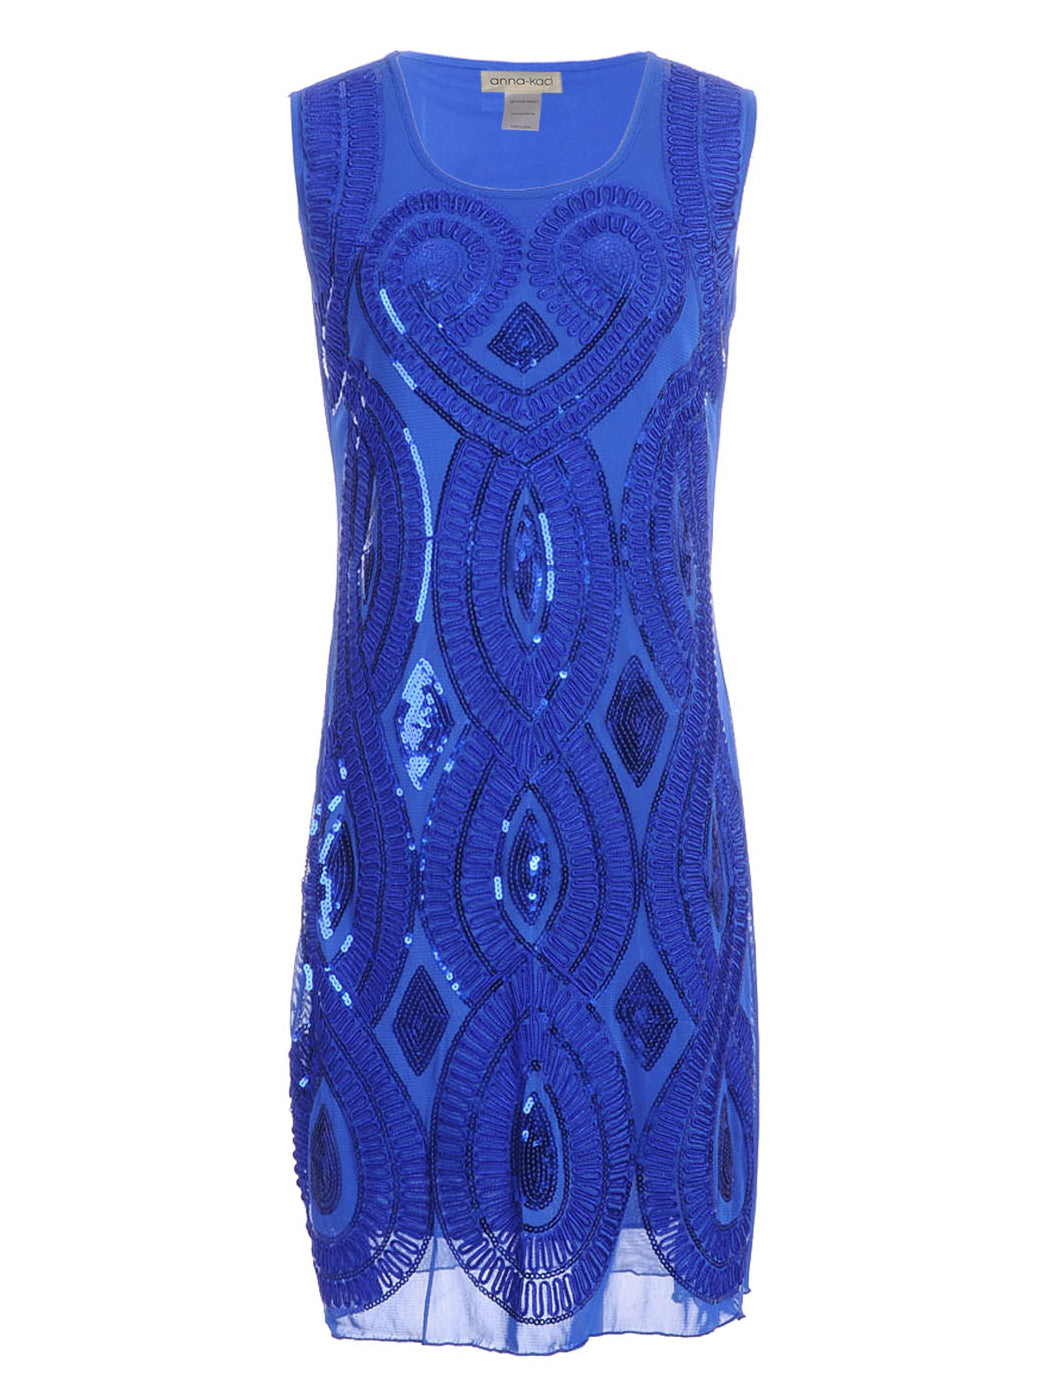 Great Gatsby Art Deco Sleeveless Dress